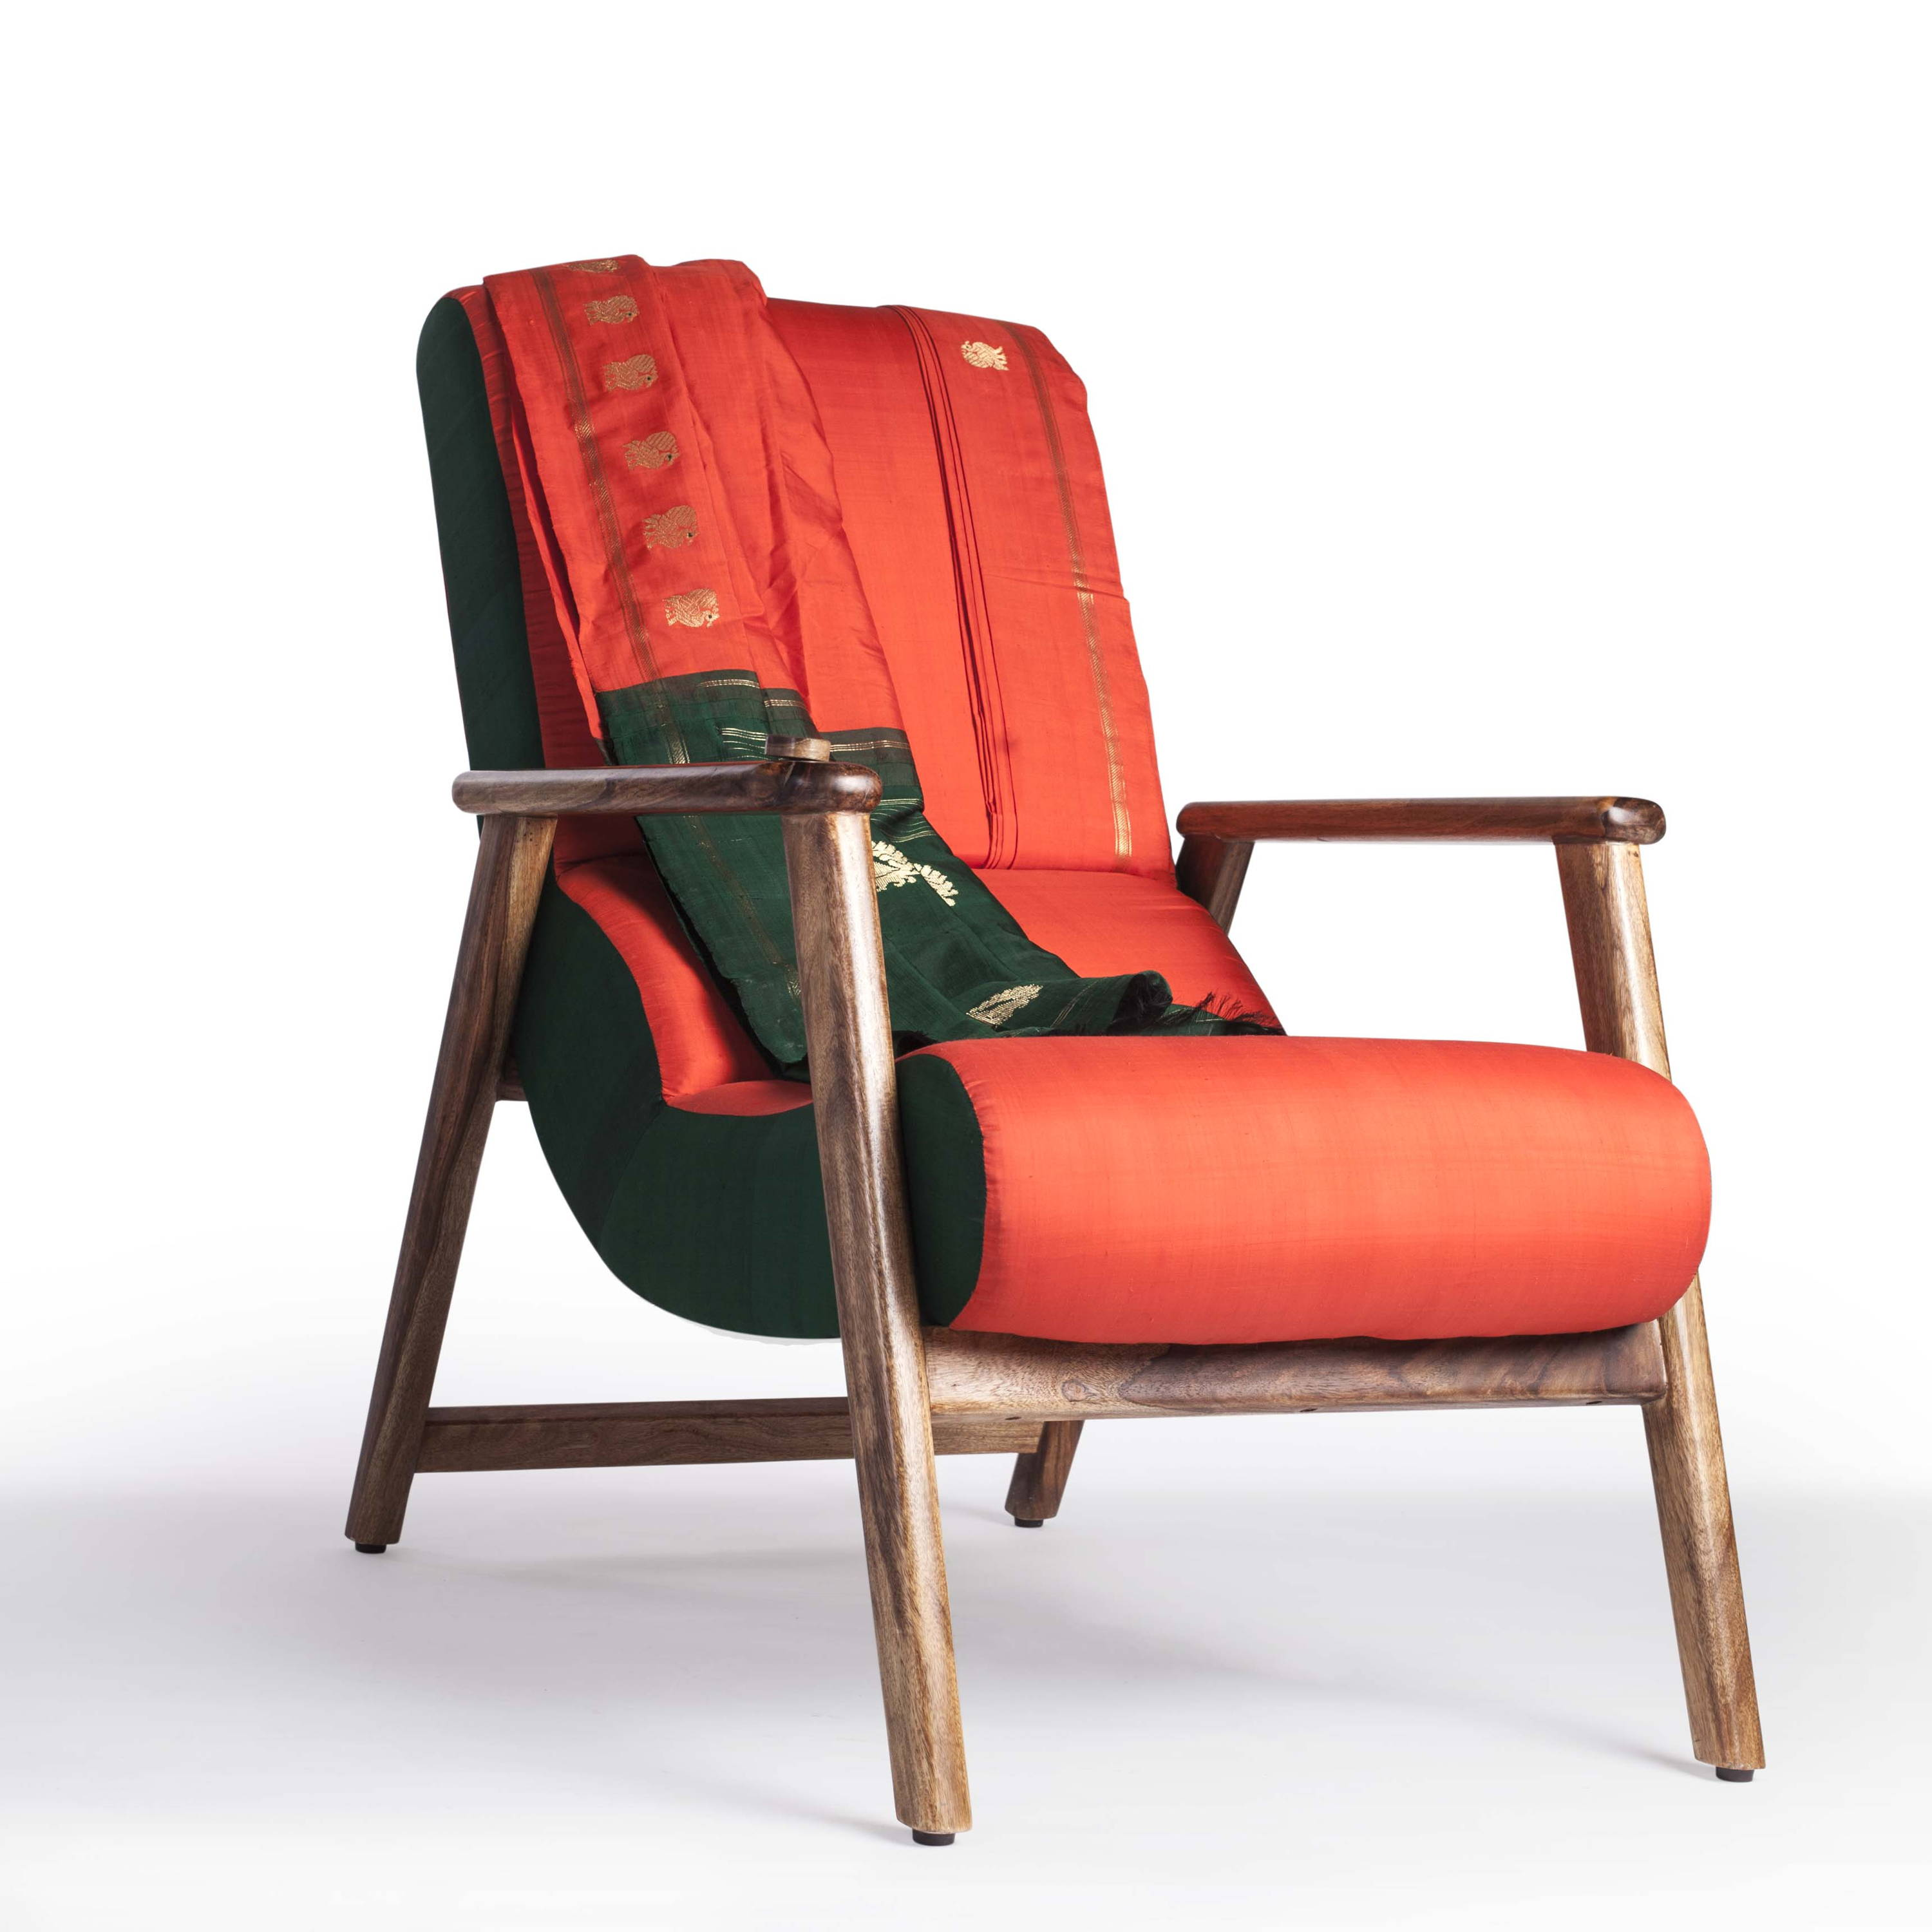 Naga Shawl Lounge Chair (Nizam)